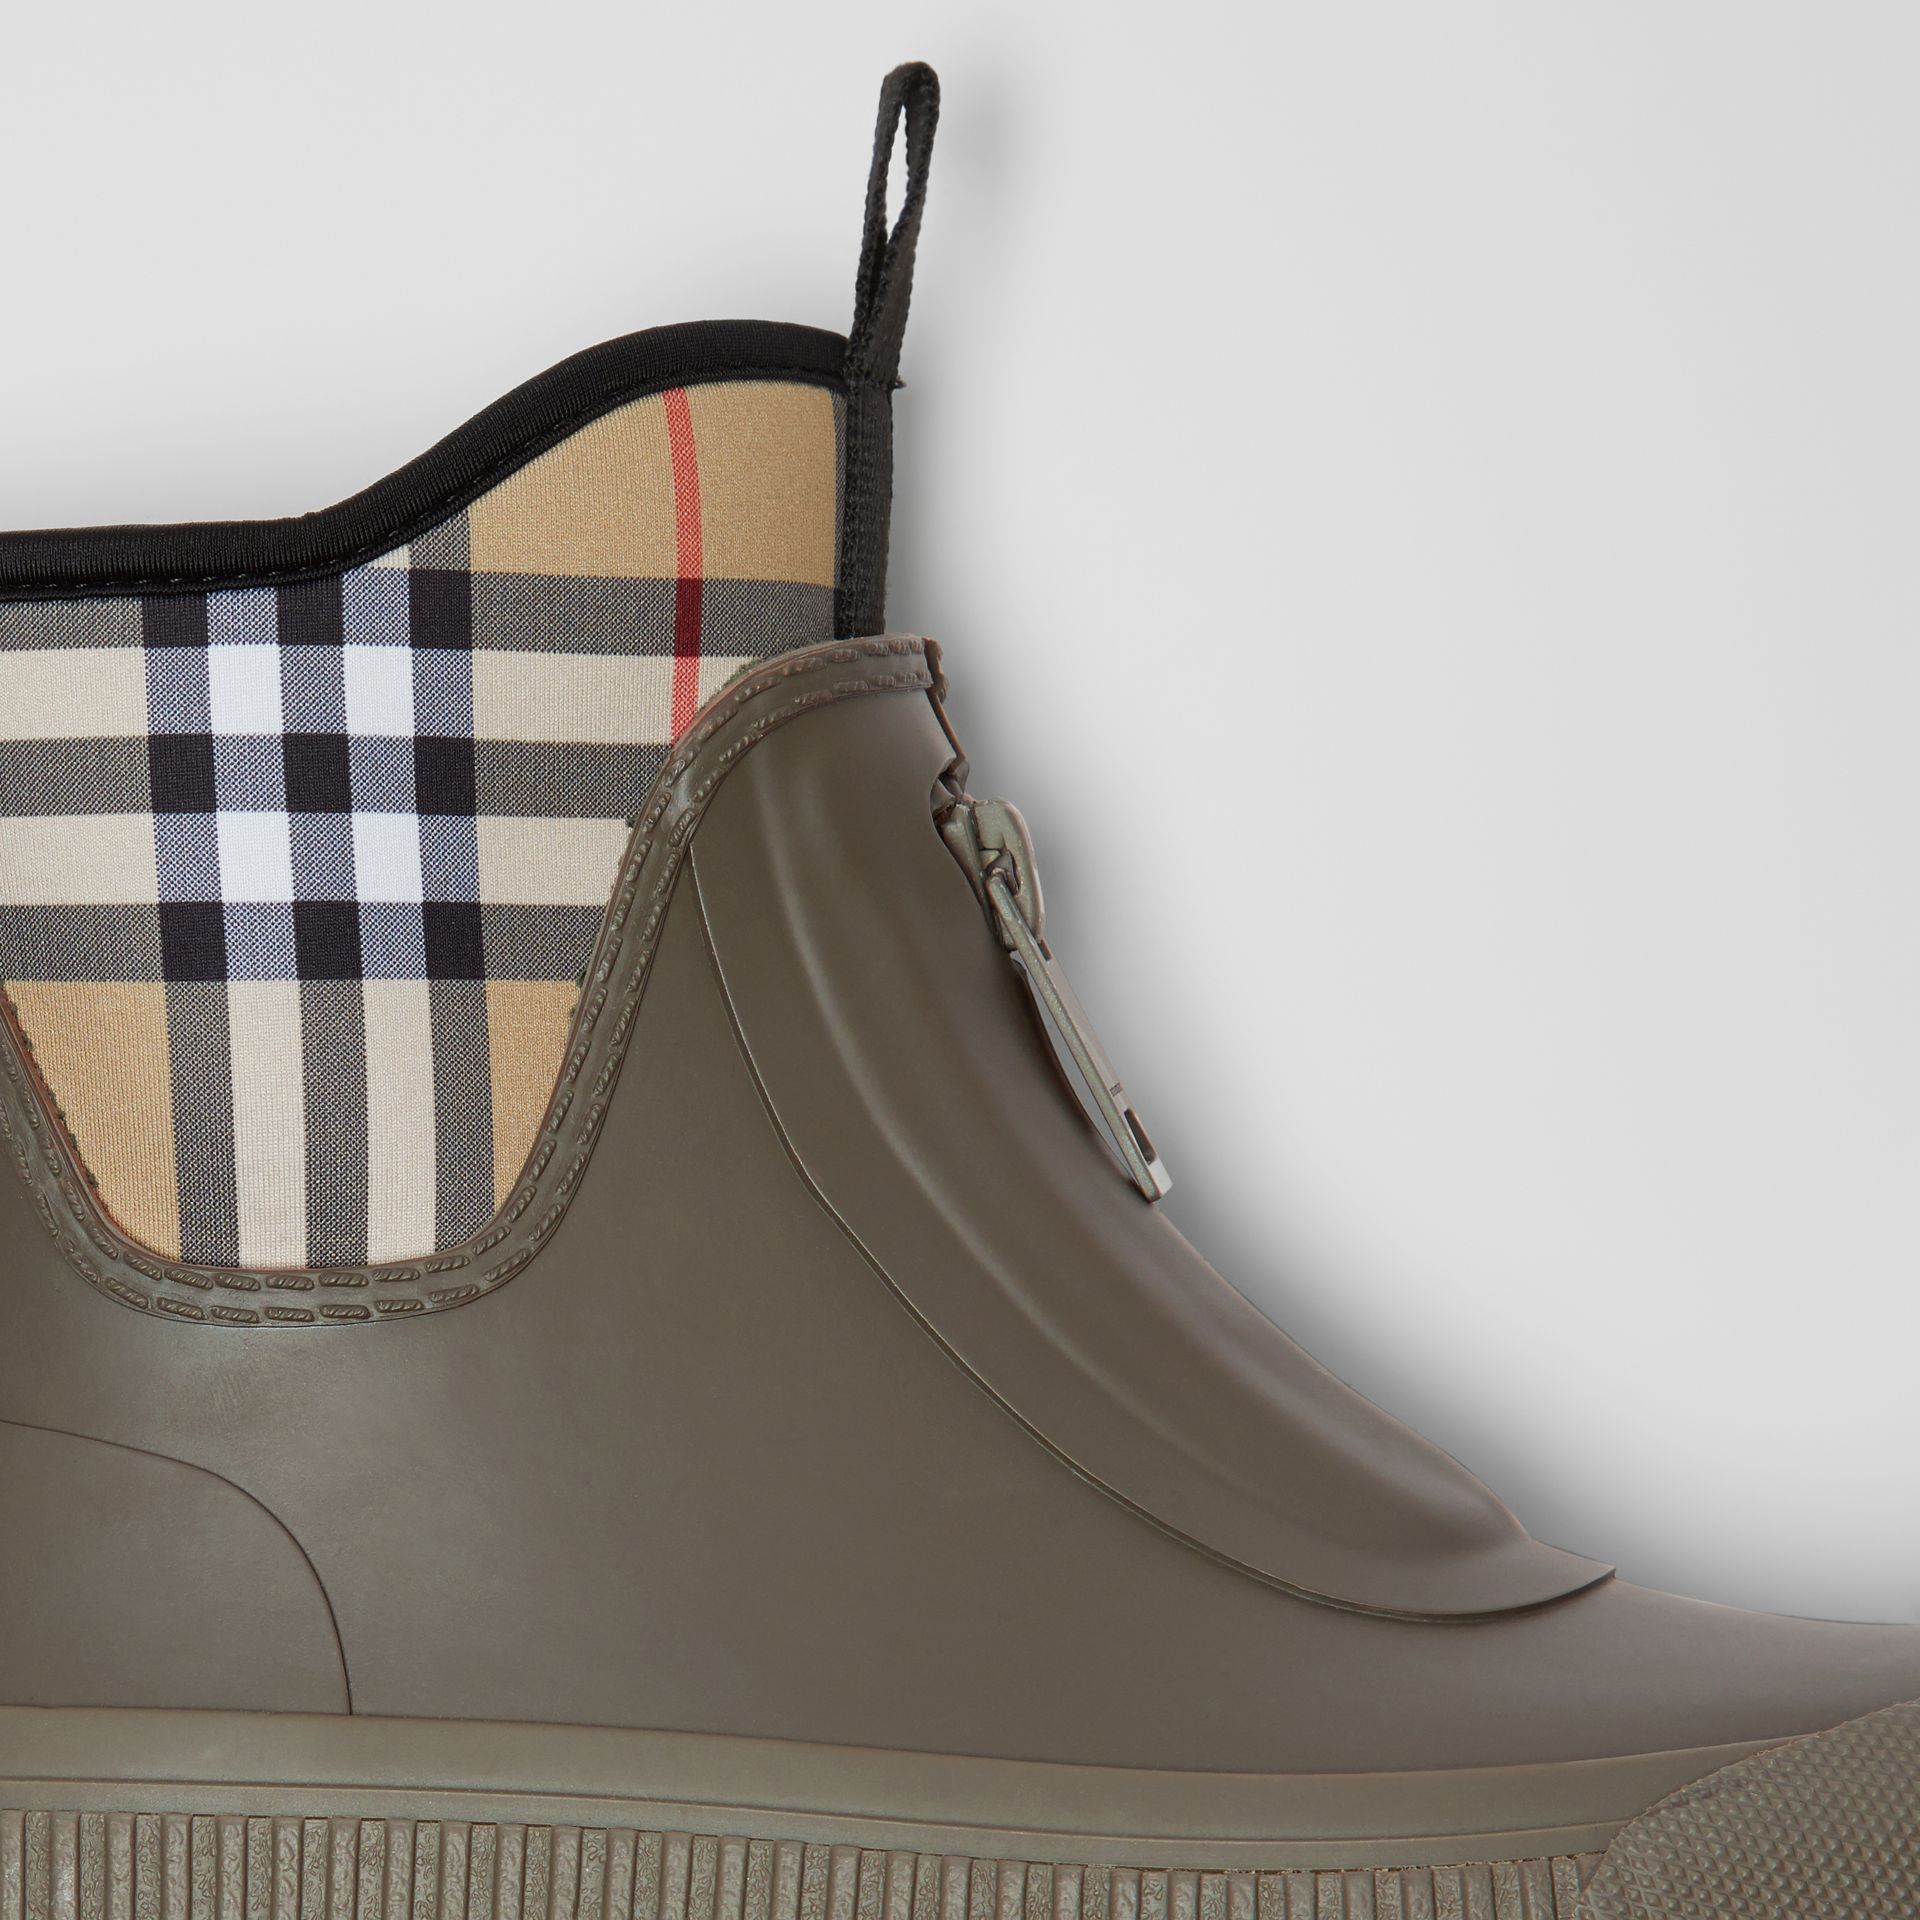 Vintage Check Neoprene and Rubber Rain Boots in Military Green - Women | Burberry United Kingdom - gallery image 1